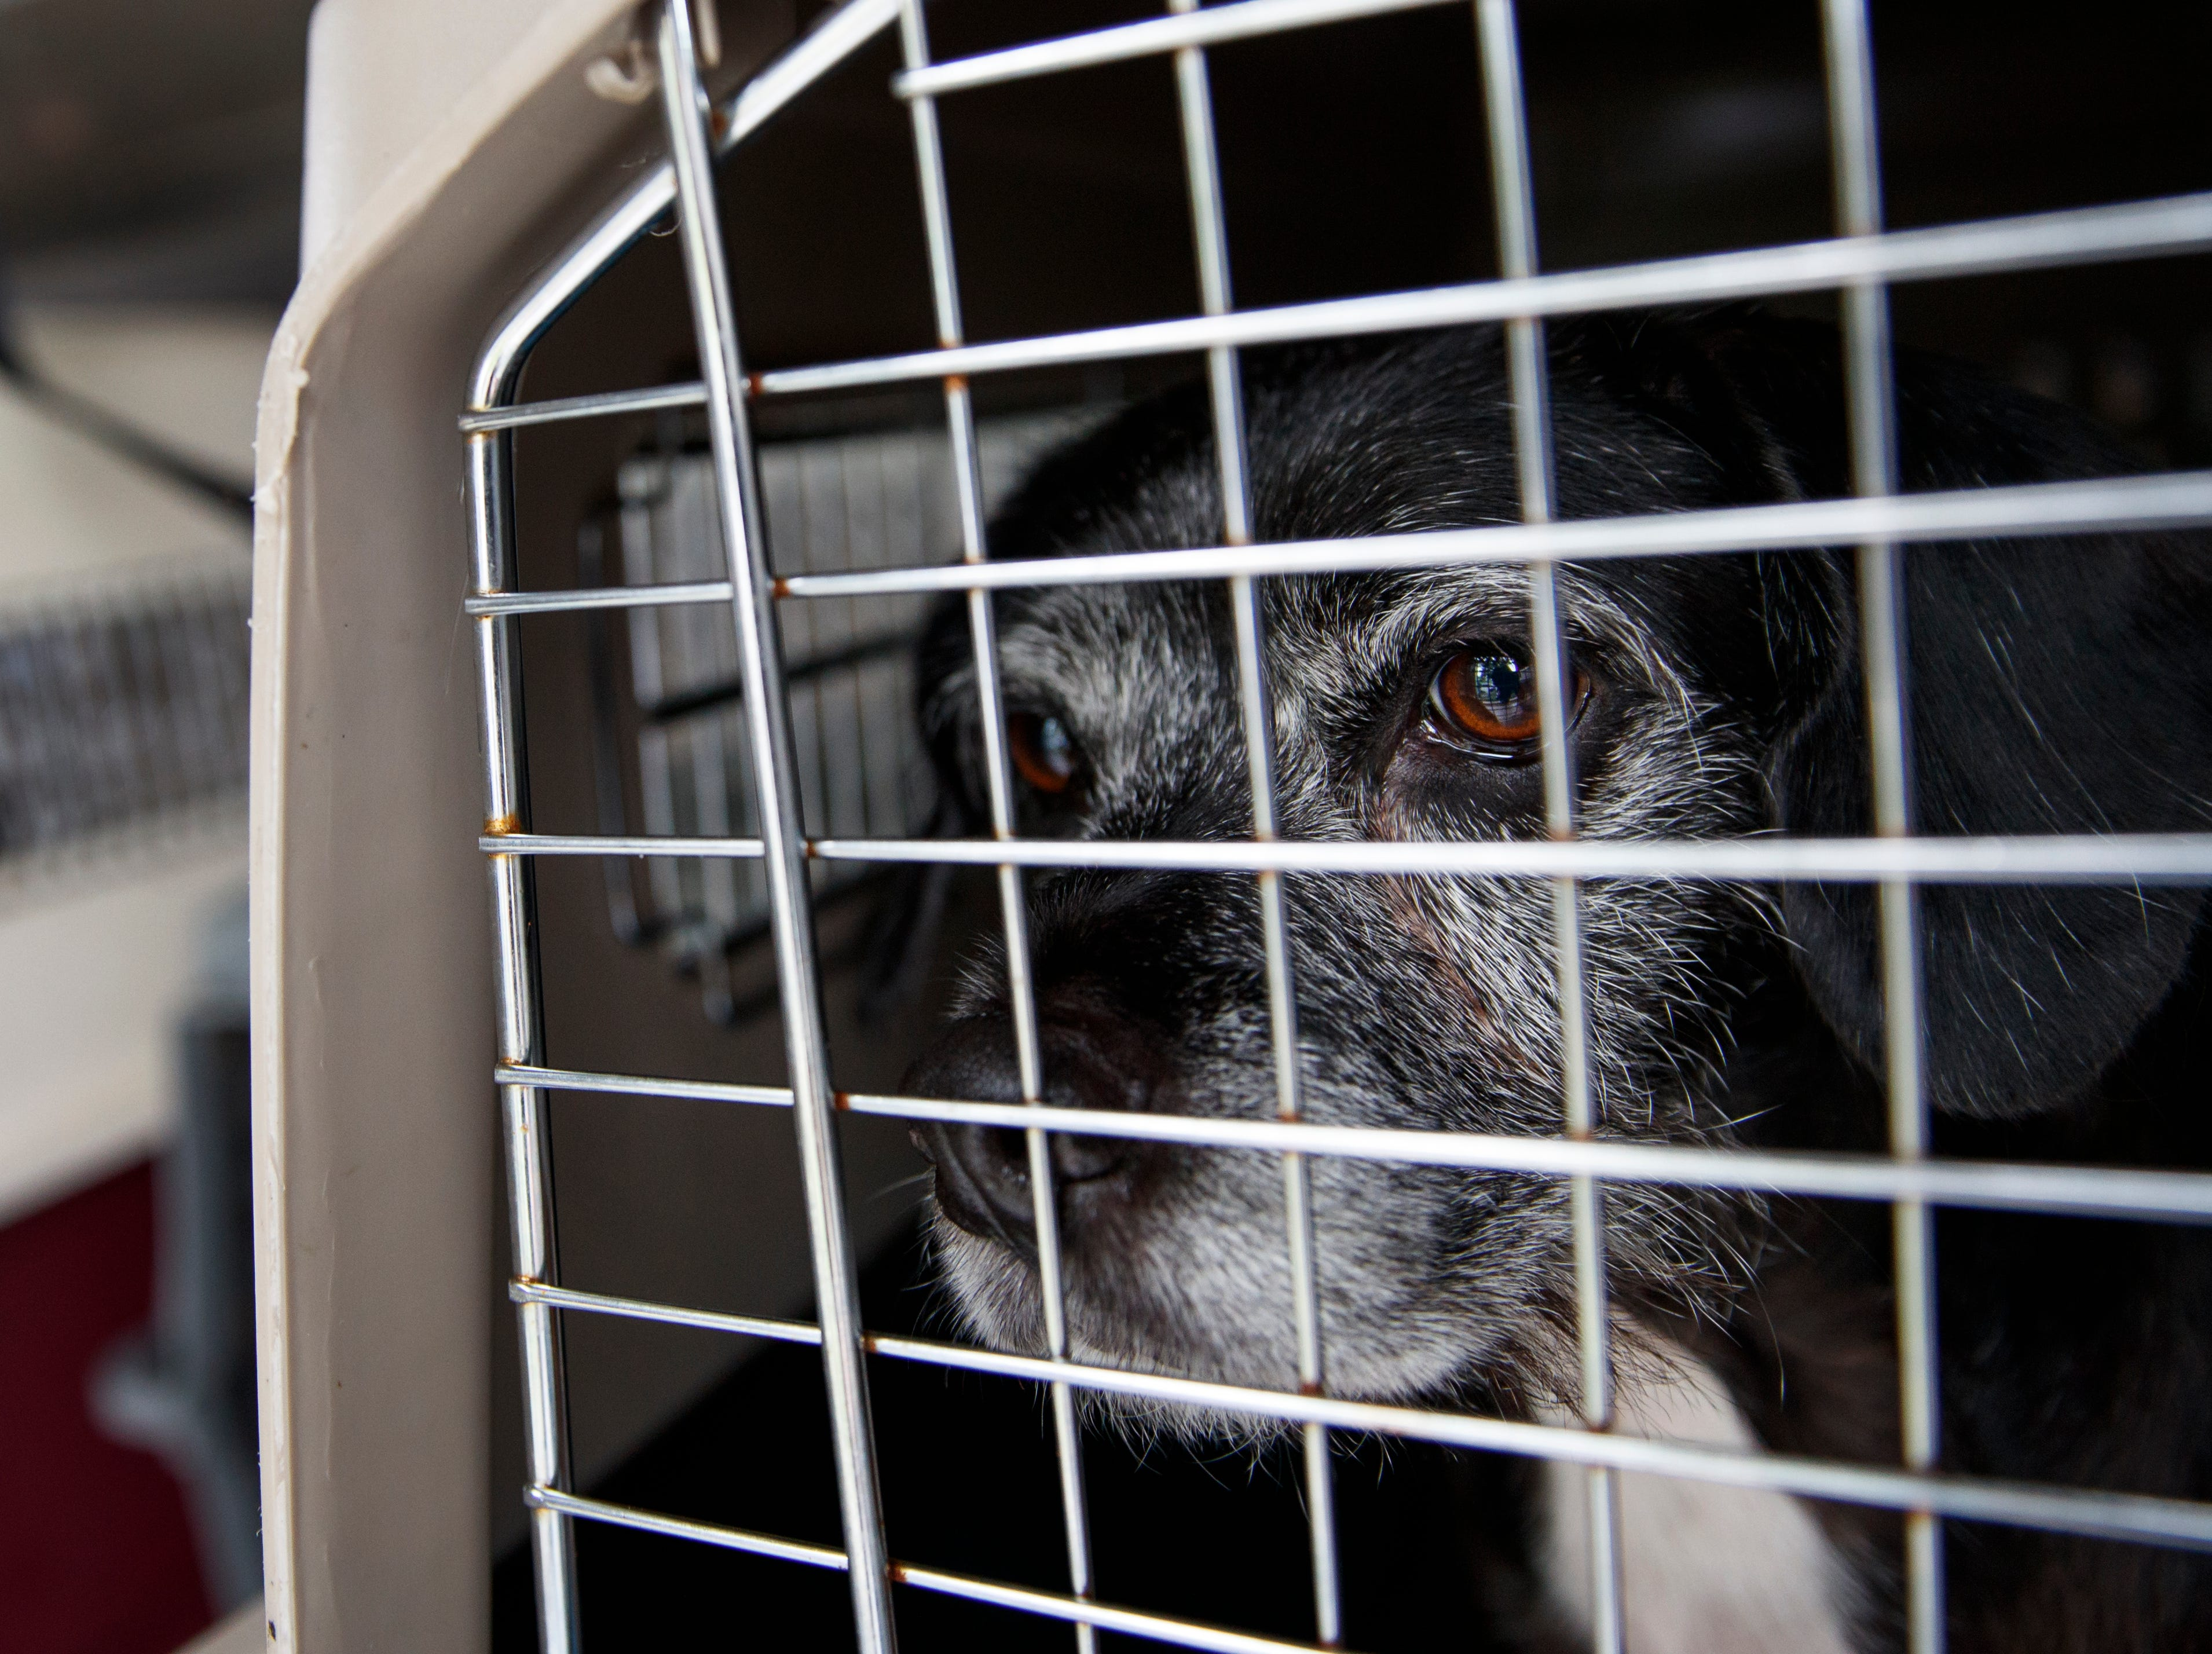 Punky, a 7-year old mixed breed dog, looks out from a crate as 26 cats and dogs arrive at Humane Rescue Alliance in Washington, Tuesday, Sept. 11, 2018, from Norfolk Animal Care and Control of Norfolk, Va., in advance of Hurricane Florence. People aren't the only ones evacuating to get out of the path of Hurricane Florence. The dogs and cats will all be available for adoption.